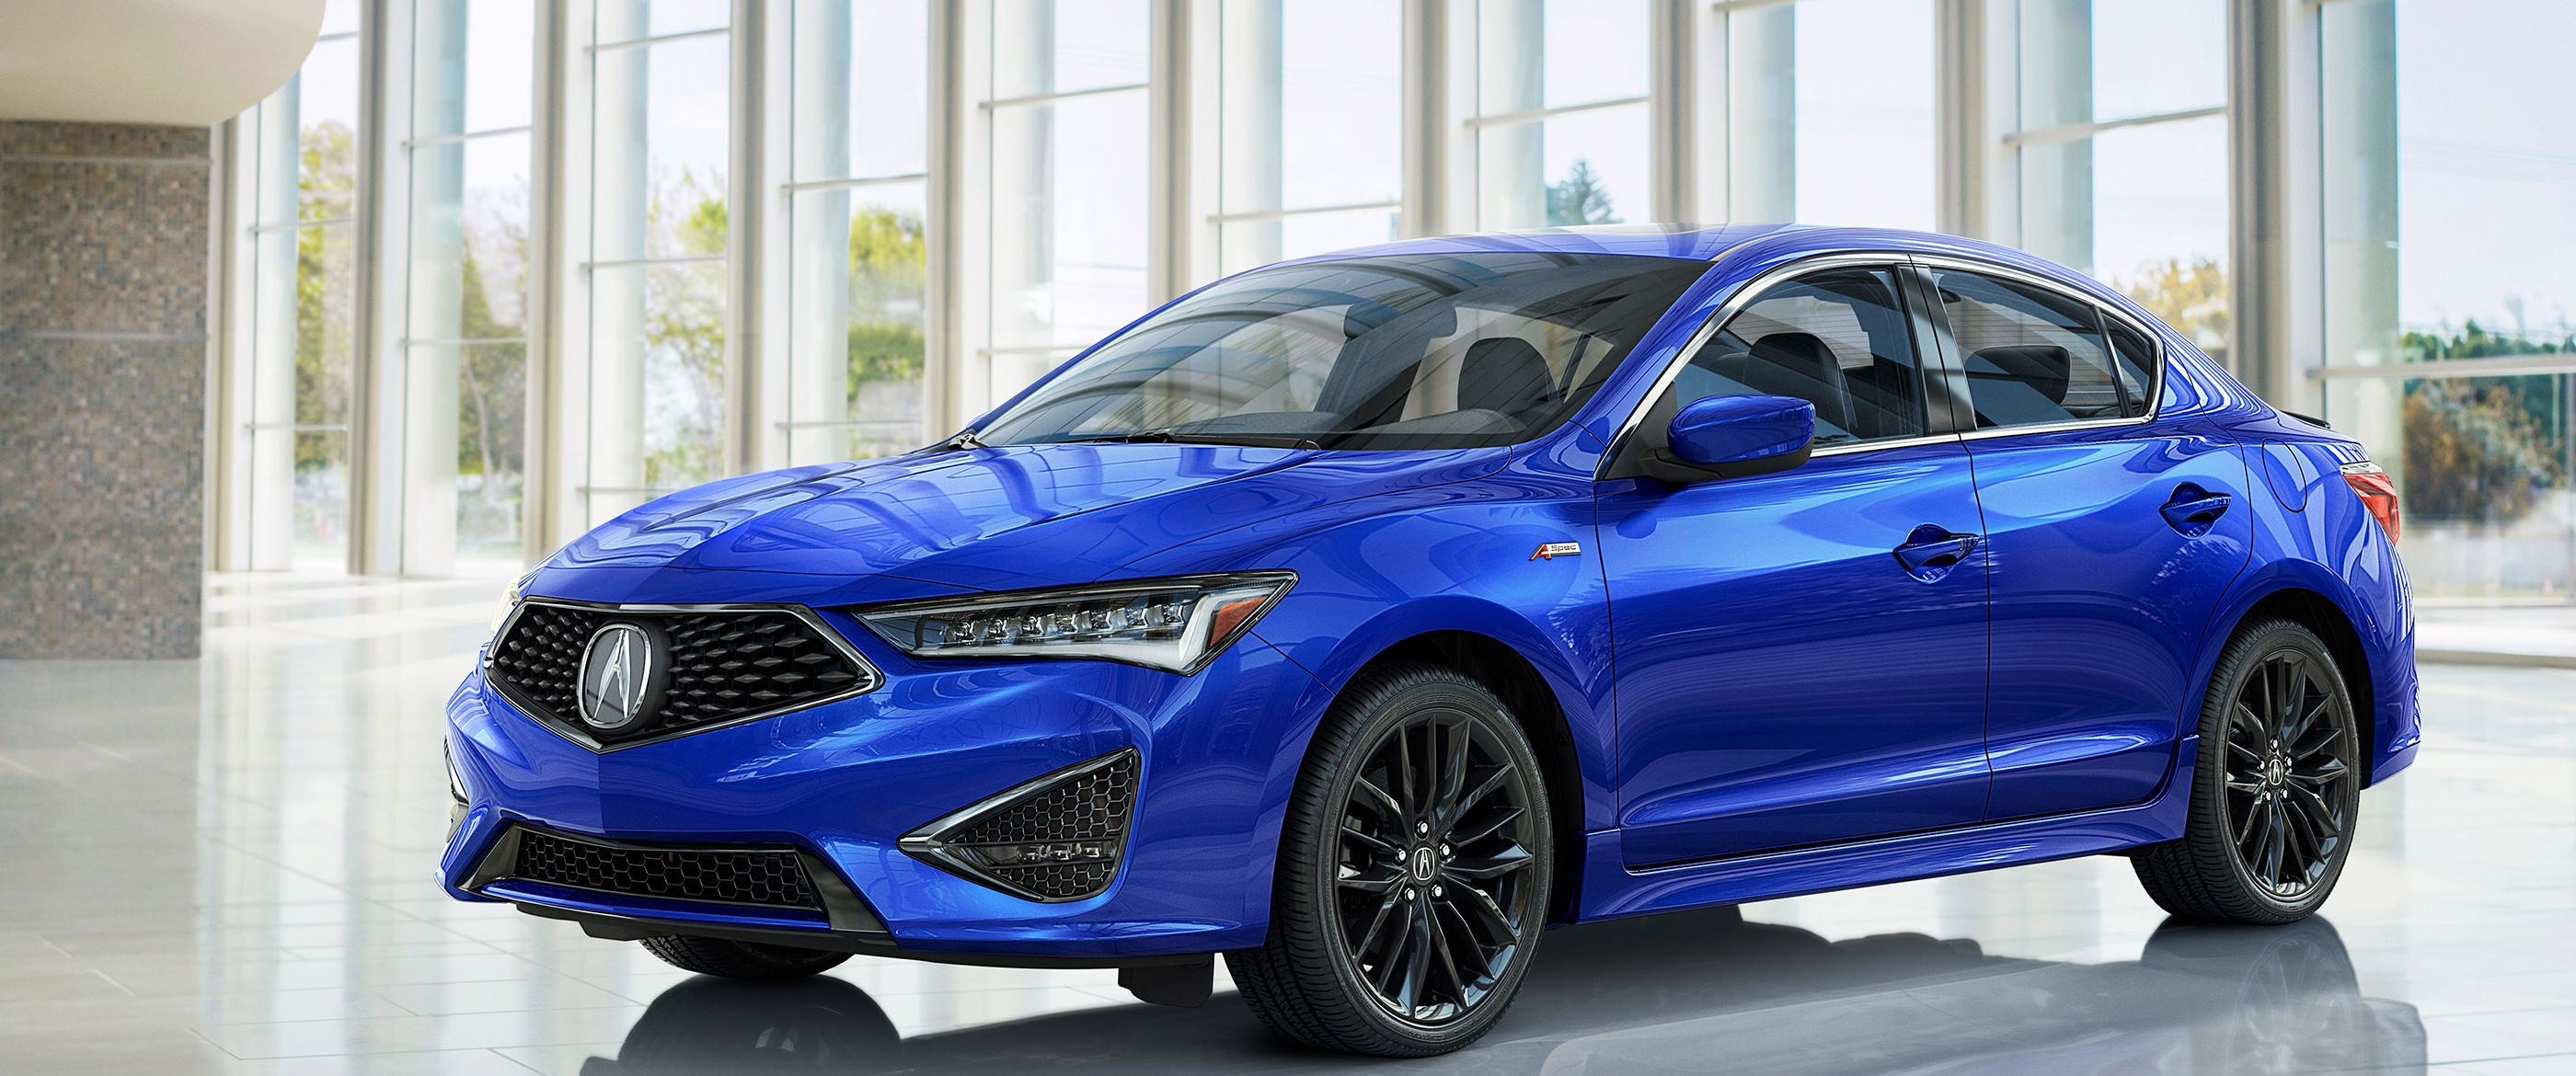 2019 Acura ILX for Sale near Munster, IN